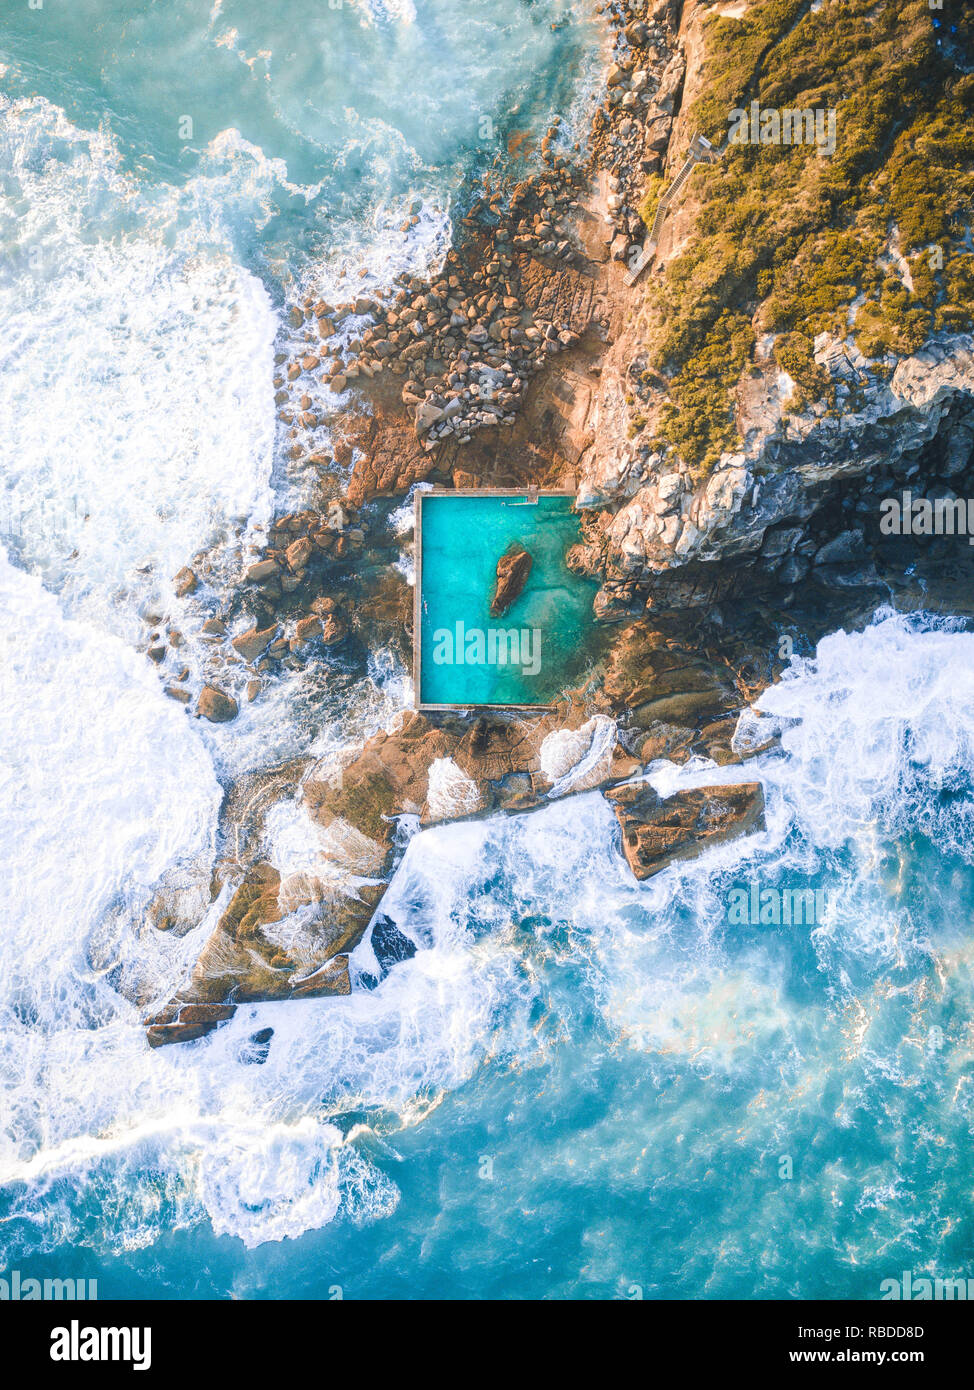 STUNNING Birdu0027s Eye View Pictures Have Revealed The Incredible Rock Pools  On Offer In Sydney, Australia. Spectacular Aerial Images Offer A New  Perspective ...